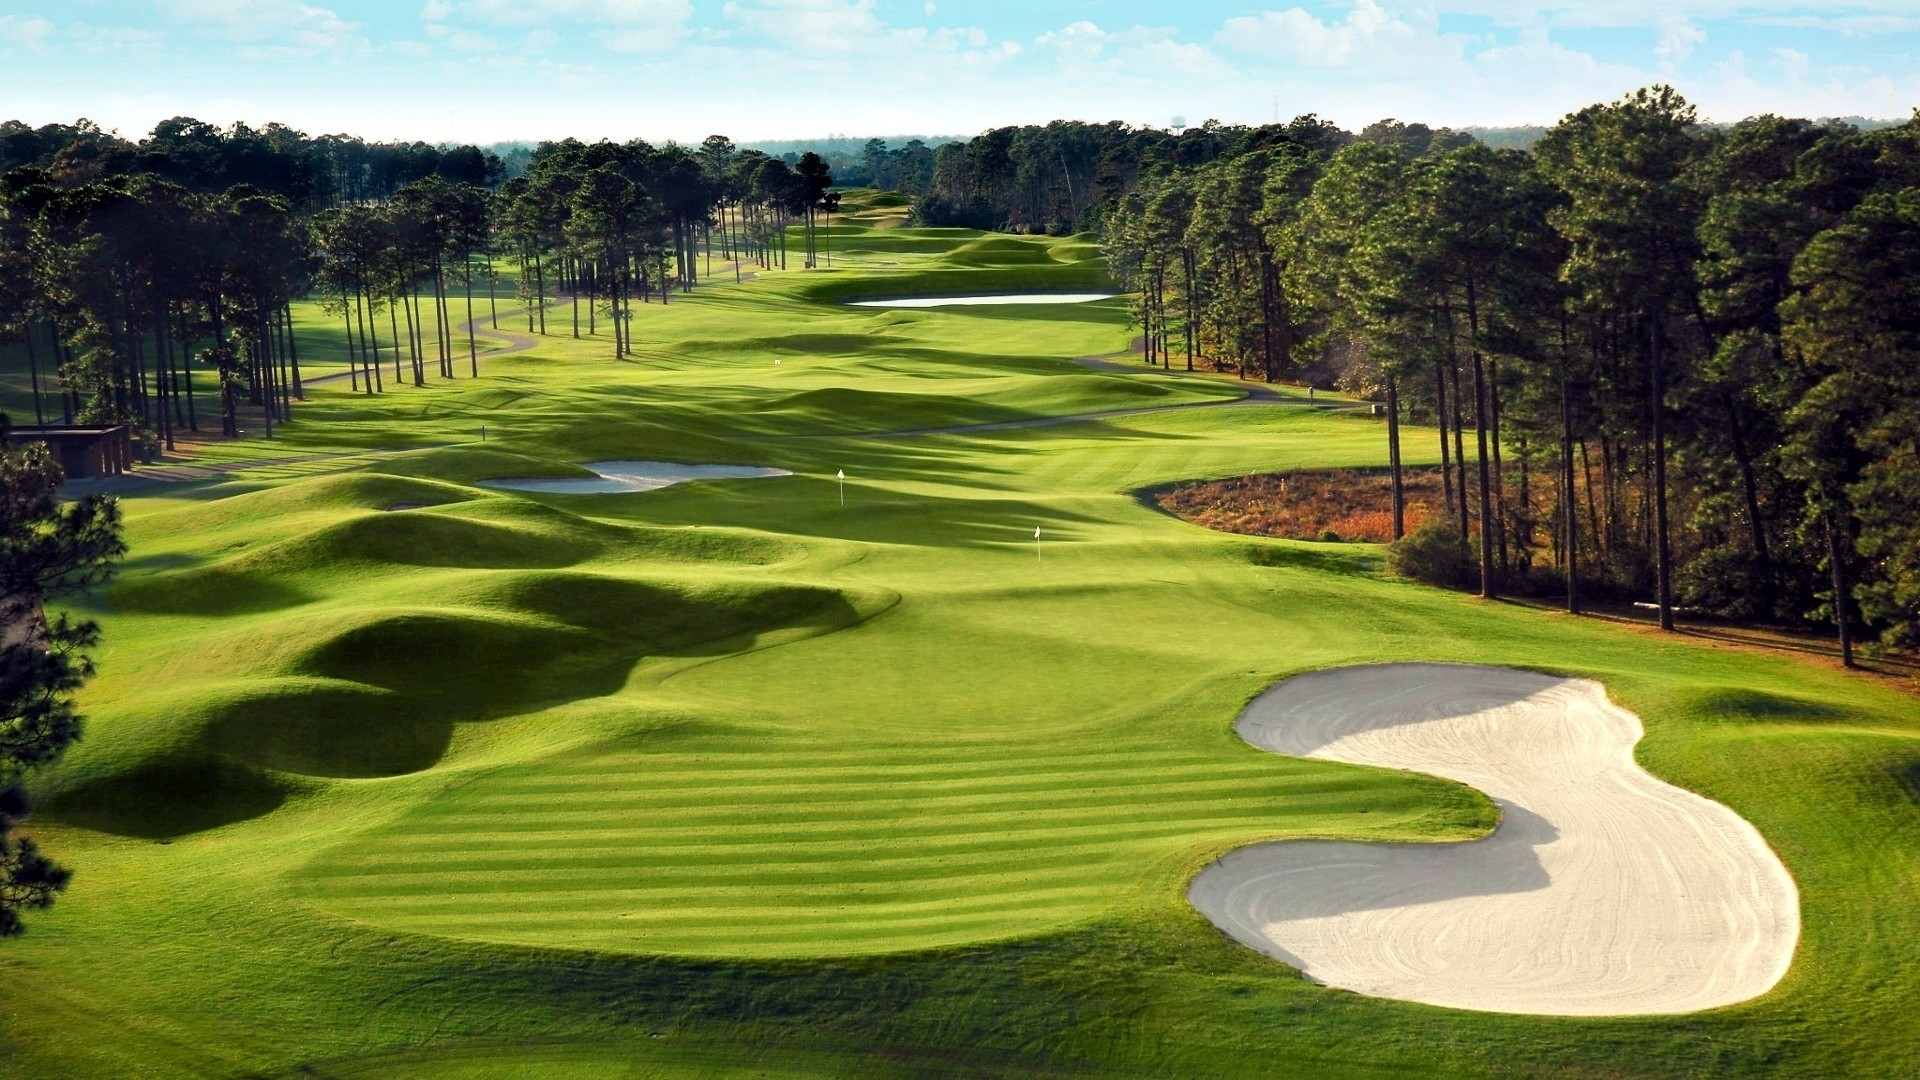 fields-green-golf-course-courses-fields-nature-high-quality